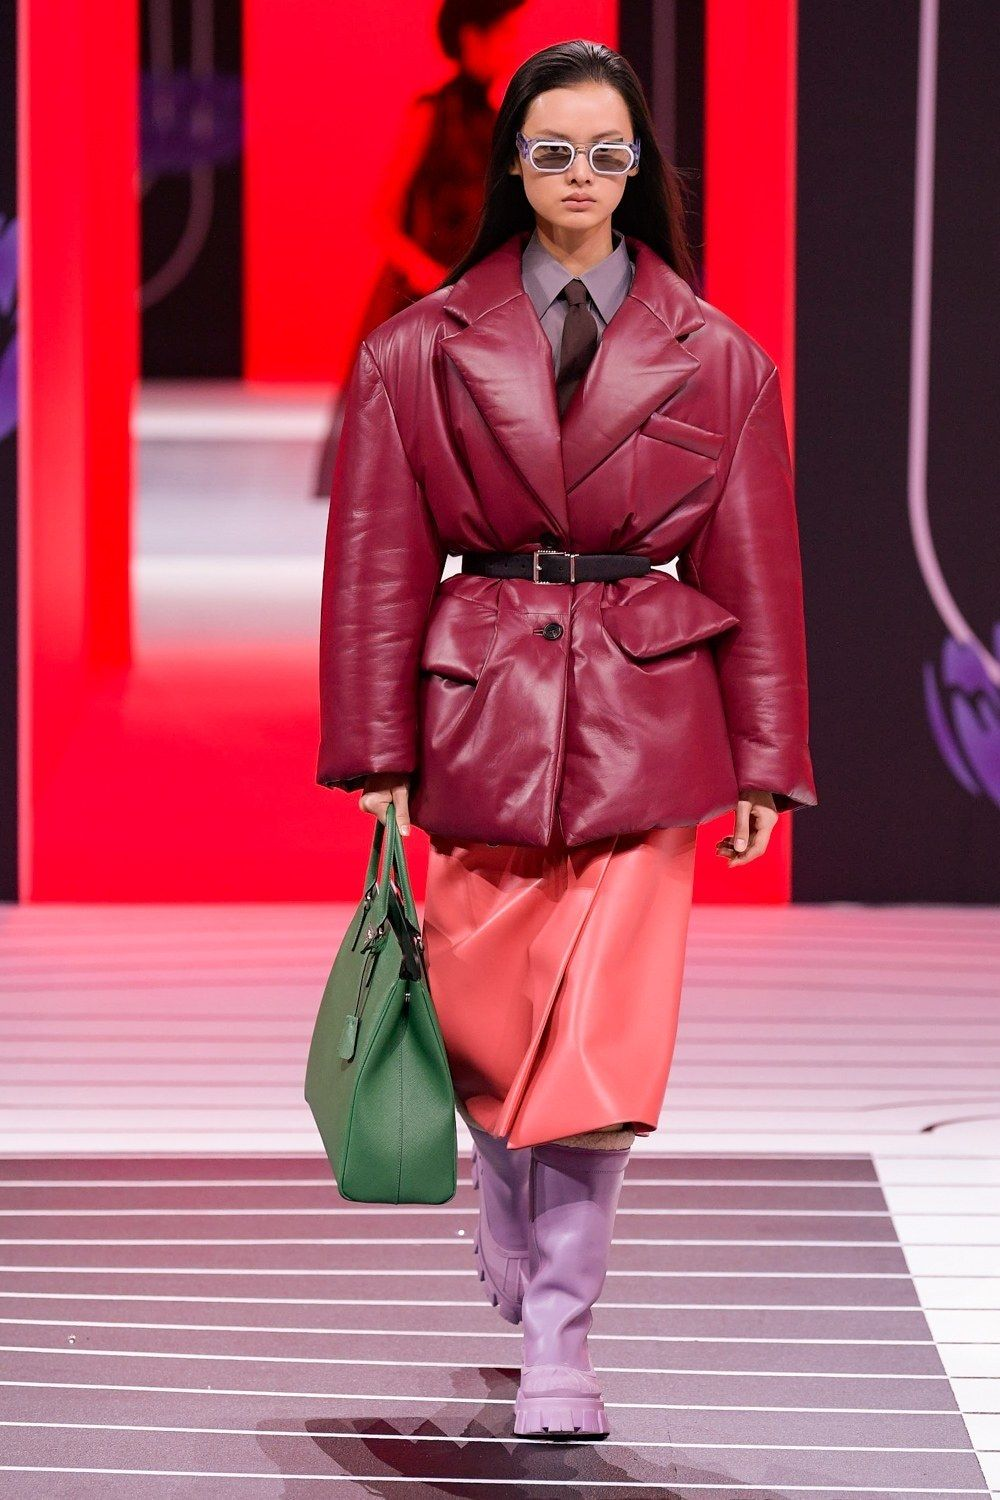 Prada Fall Winter 2020 21 Fashion Show In 2020 Ready To Wear Milan Fashion Week How To Wear